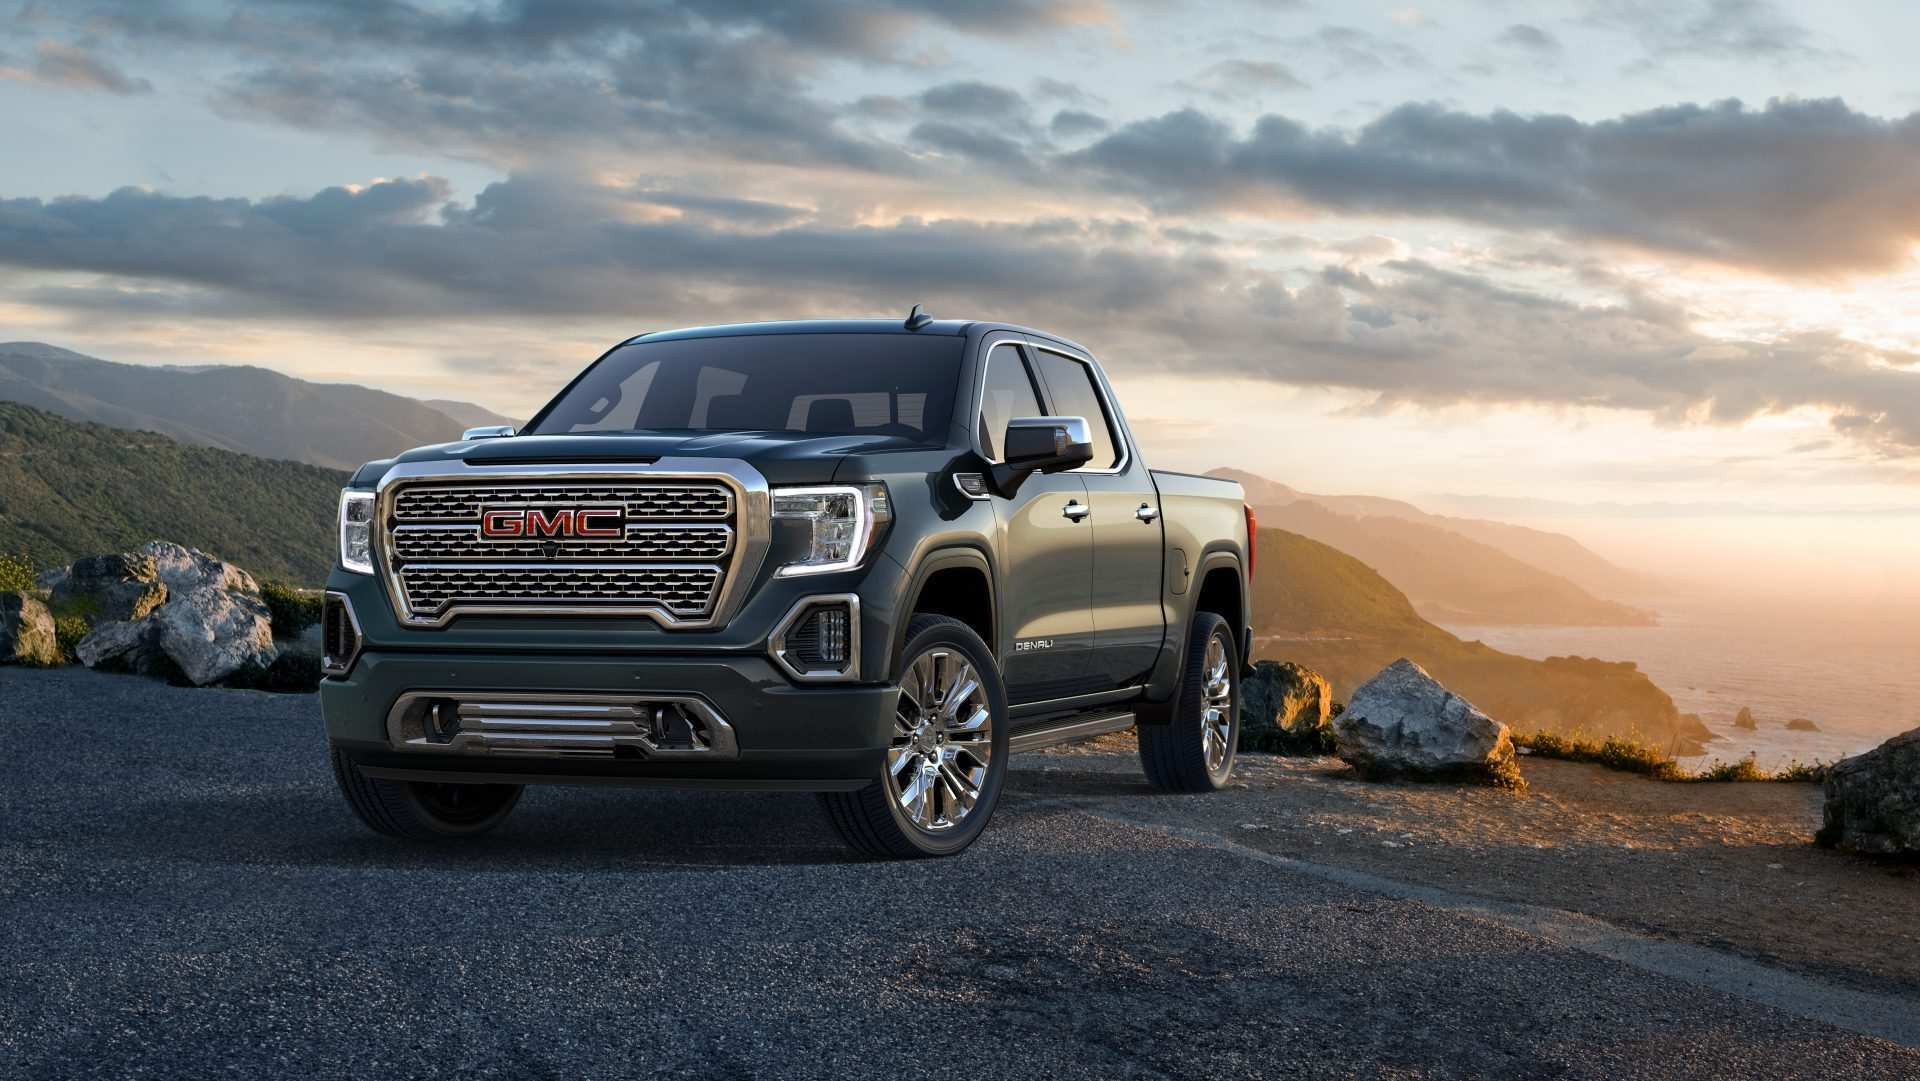 35 The New Gmc 2019 Sierra 1500 First Drive Ratings by New Gmc 2019 Sierra 1500 First Drive